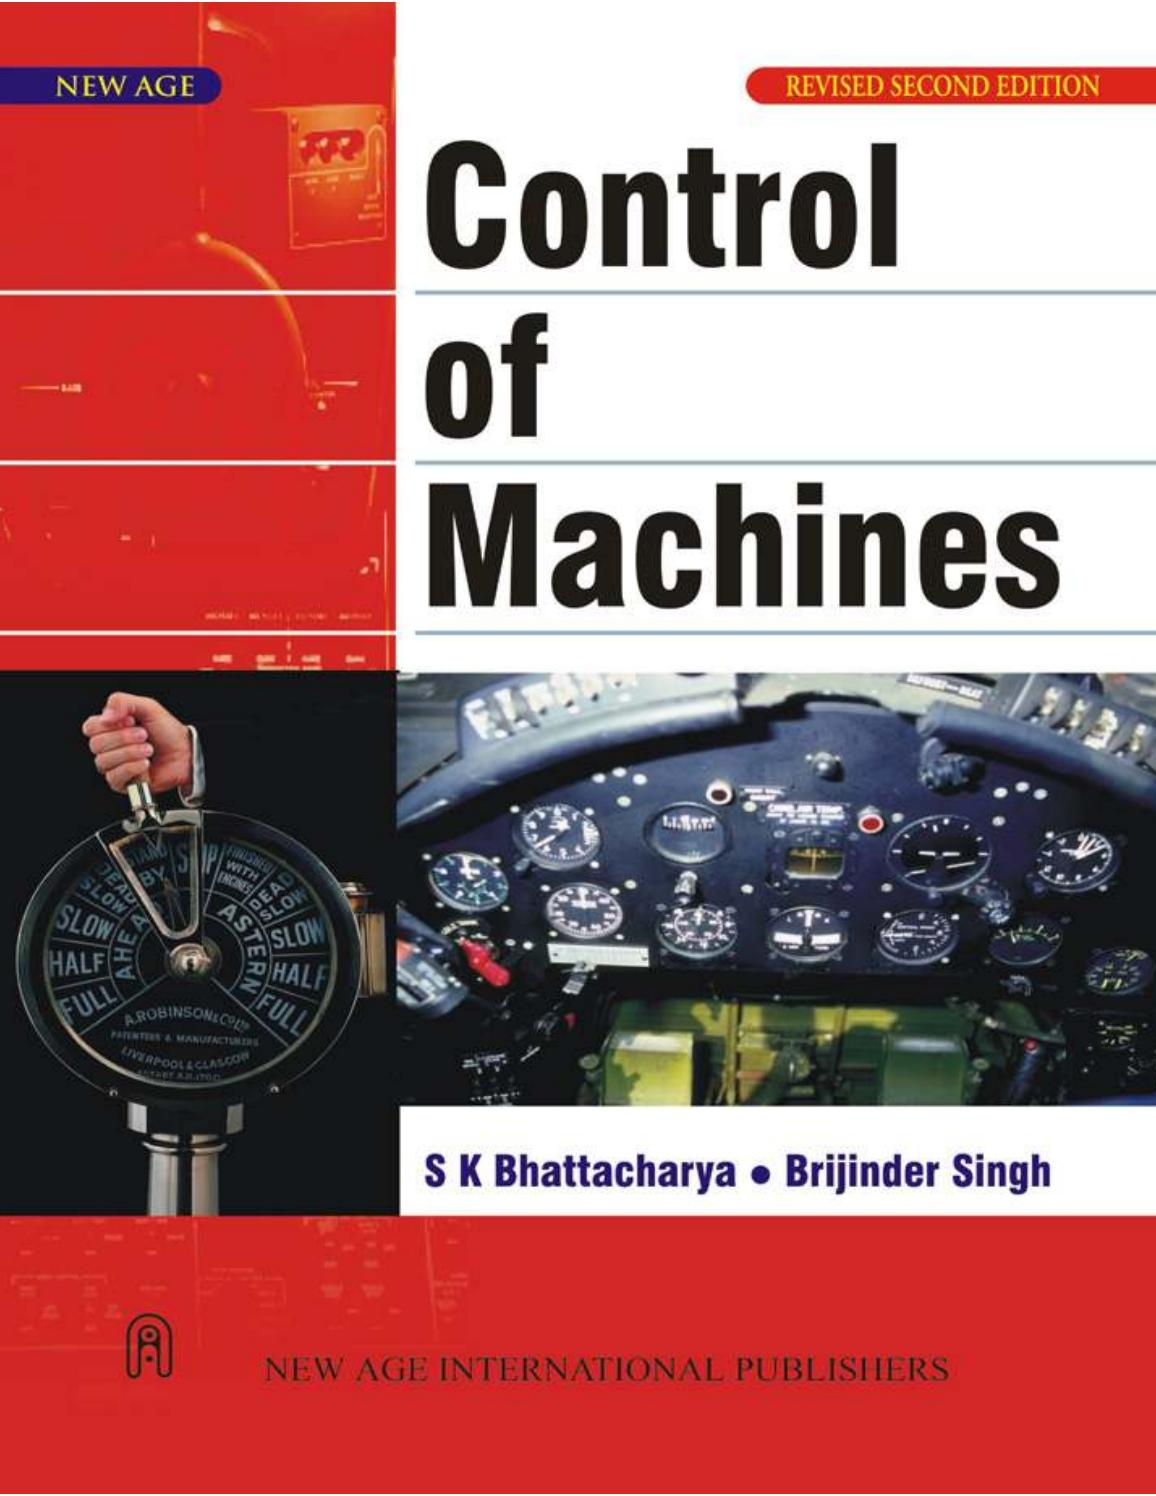 Control Of Machines S K Bhattacharya Brijinder Singh By Blog 10 Copper Clad Laminate Circuit Boards Fr2 Pcb Single Side 12cmx18cm Da Engenharia De Produo Issuu